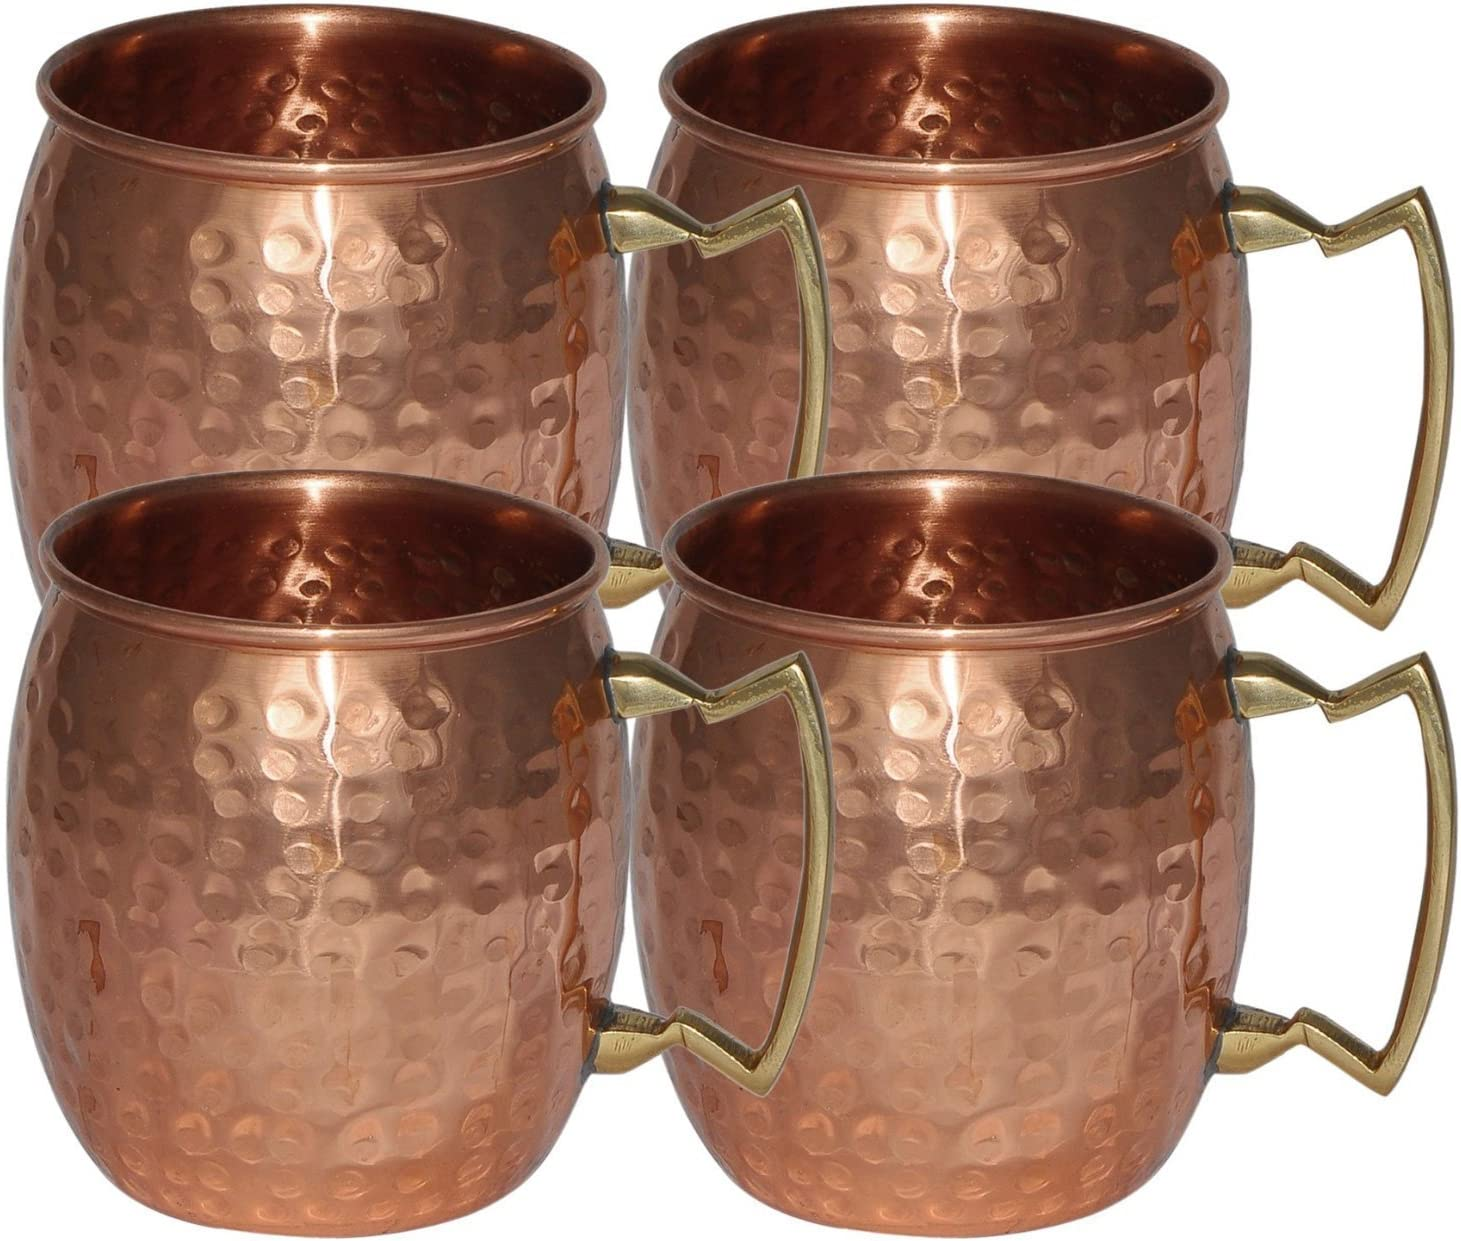 16 Oz Handmade Hammered 2 Pack 100/% Pure Copper Moscow Mule Mugs Drinking Cup